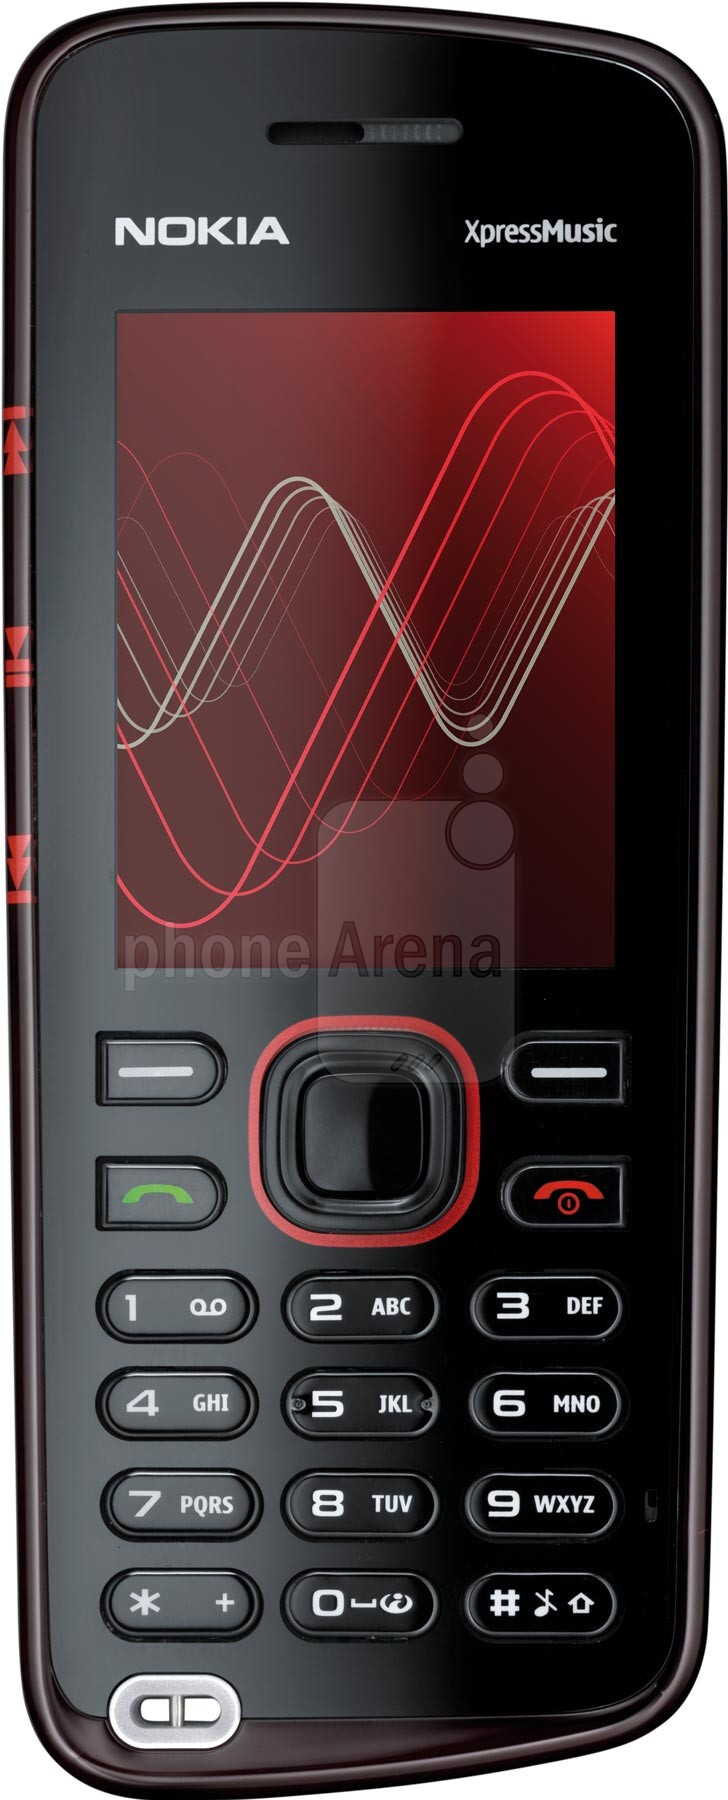 Nokia 5220 XpressMusic Applications Free Download